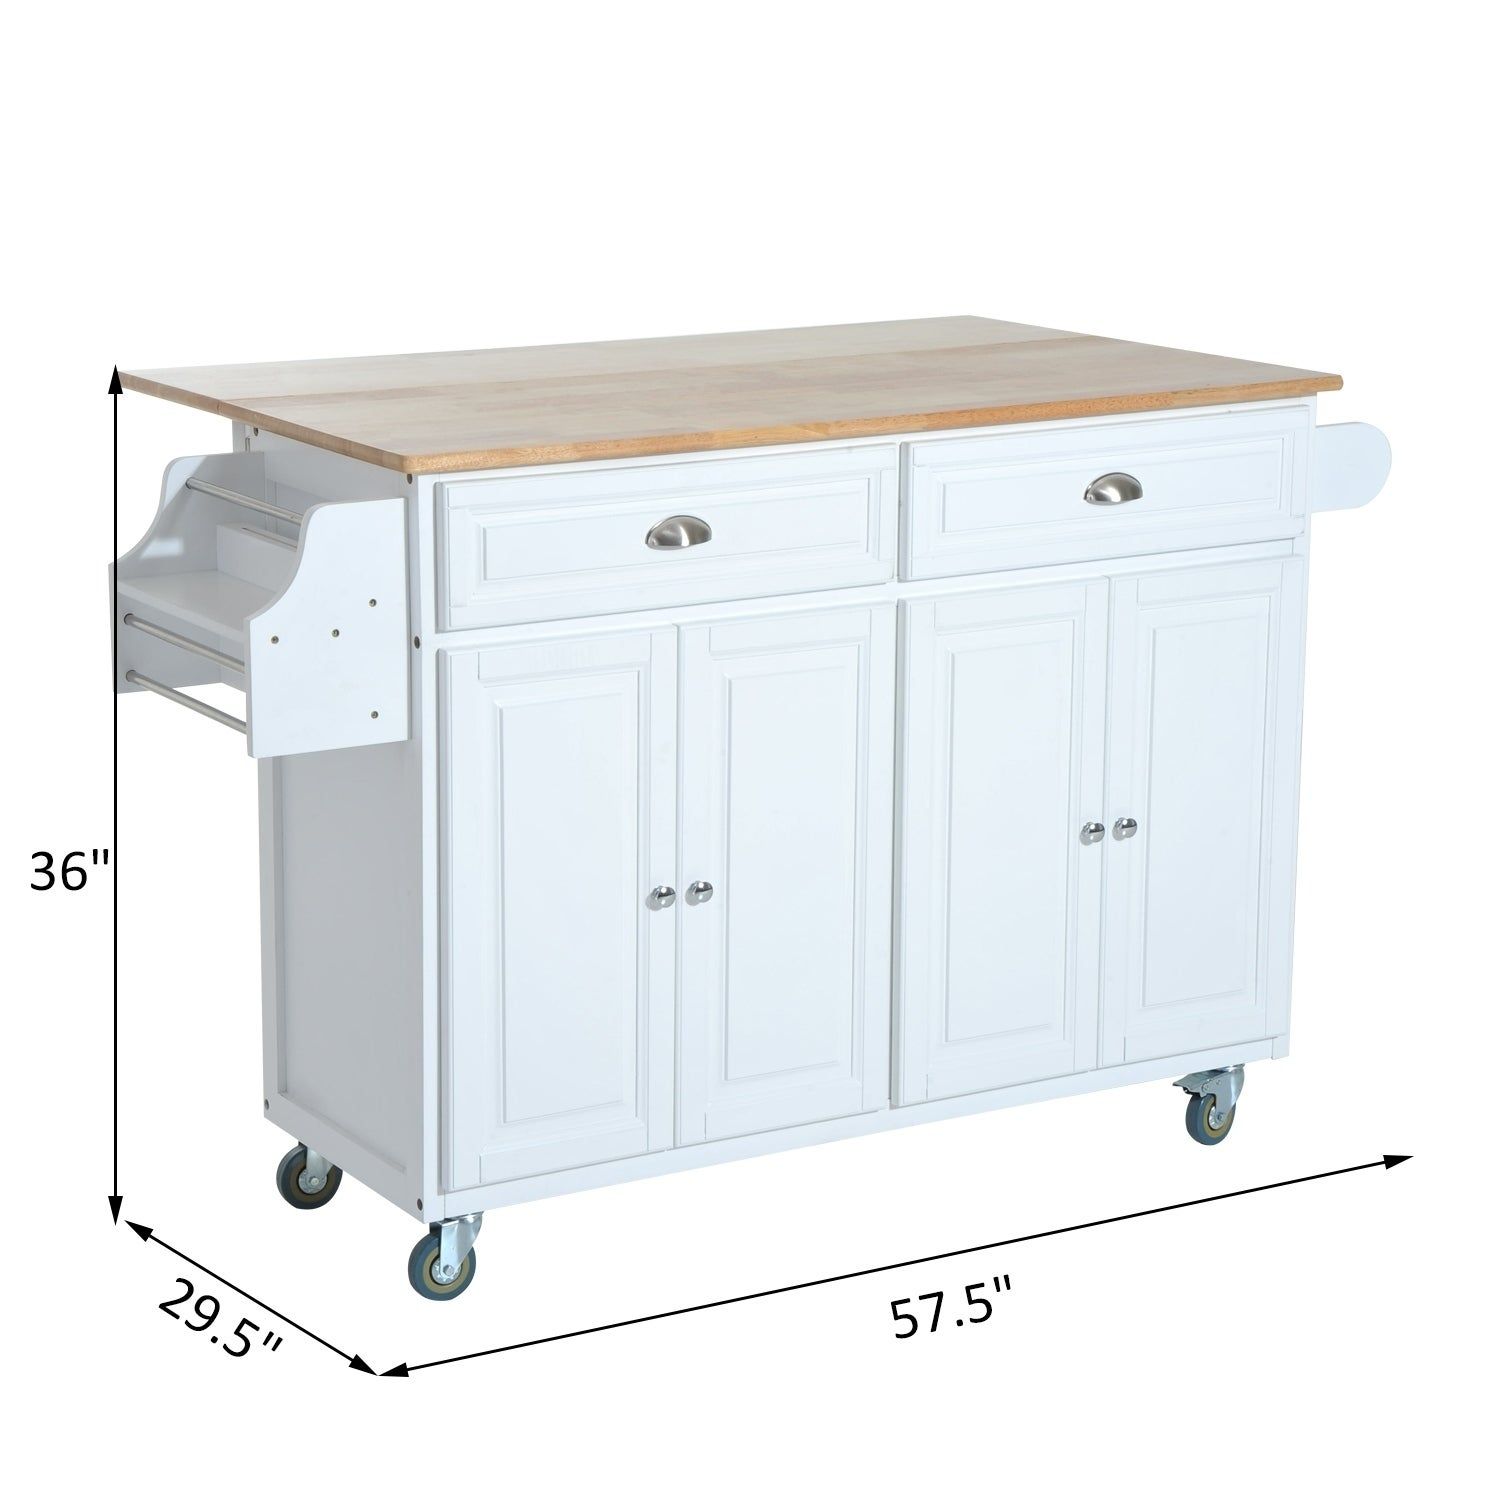 asp bathroom carts white storage organizers in drawer cart drawers with